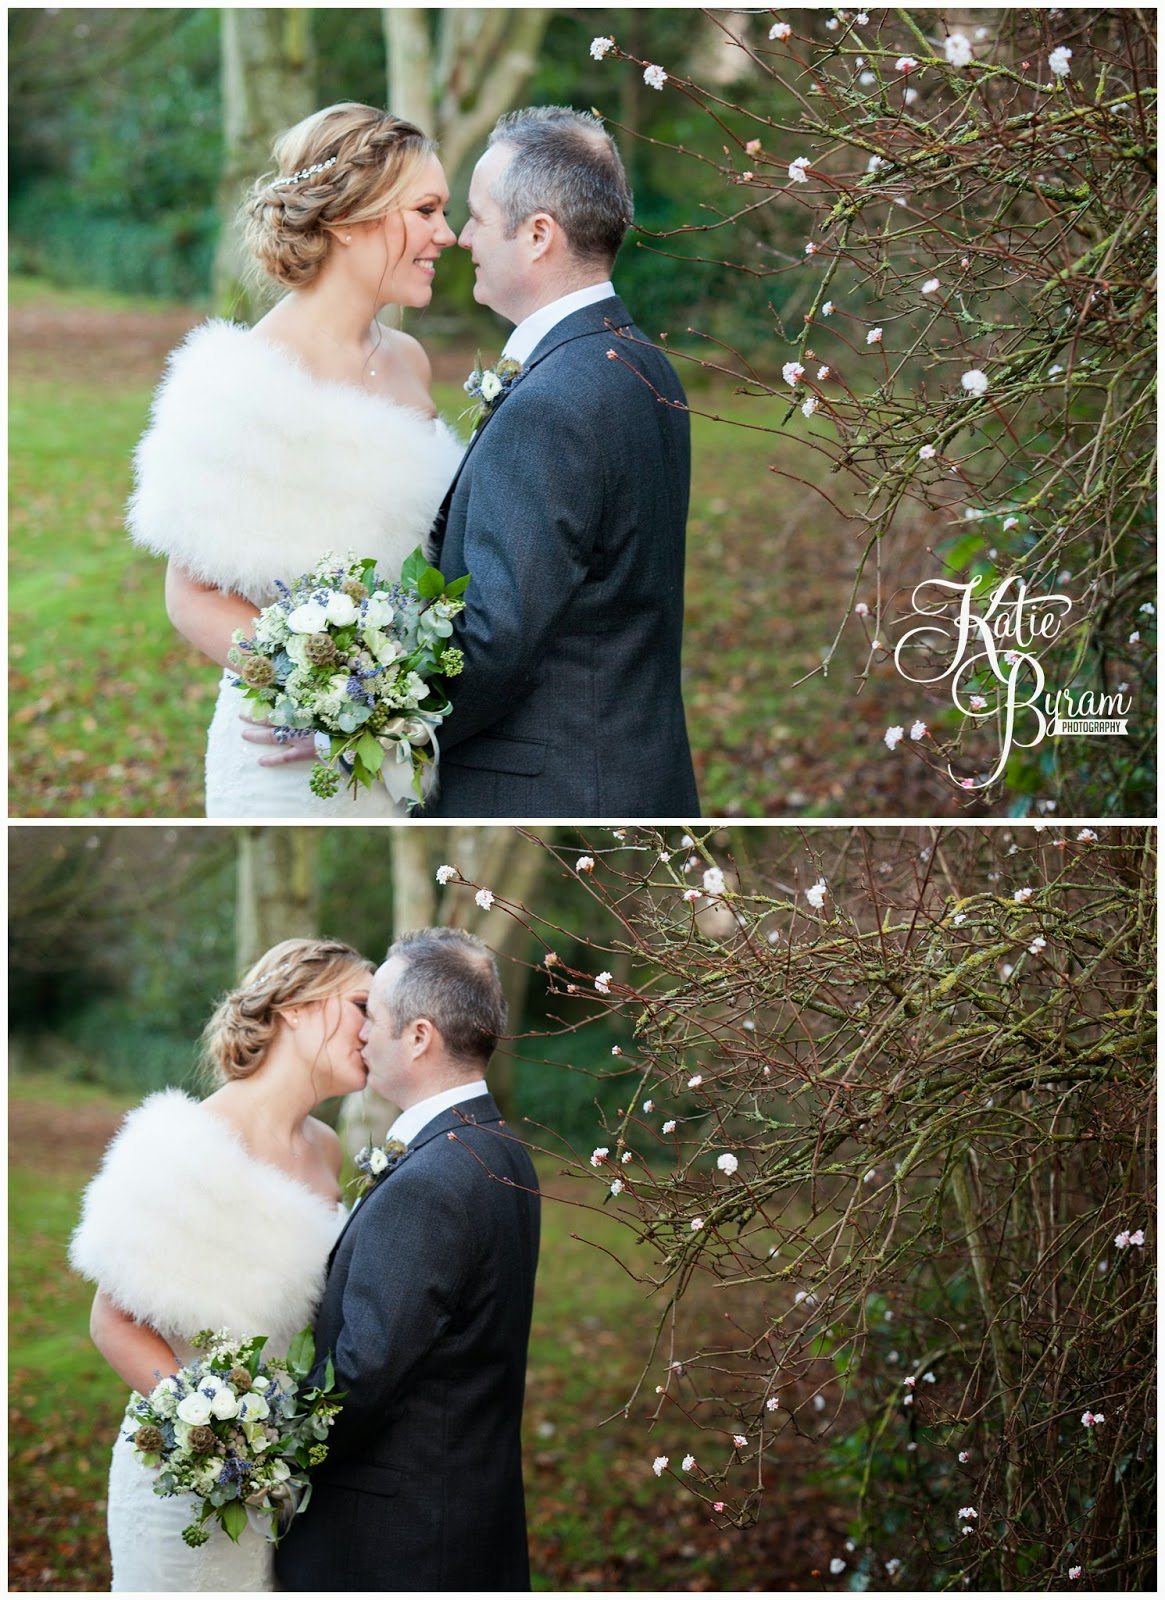 ellingham hall wedding, alnwick wedding, katie byram photography, ellingham hall, mia sposa bridal, wedding venues north east, newcastle wedding photographer, ellingham, alnwick treehouse wedding, adam prest flowers, winter wedding, winter wedding theme, by wendy stationery, quirky wedding photography, northumberland wedding, northumberland, dani.mua, dani make up artist, lisa cameron hair